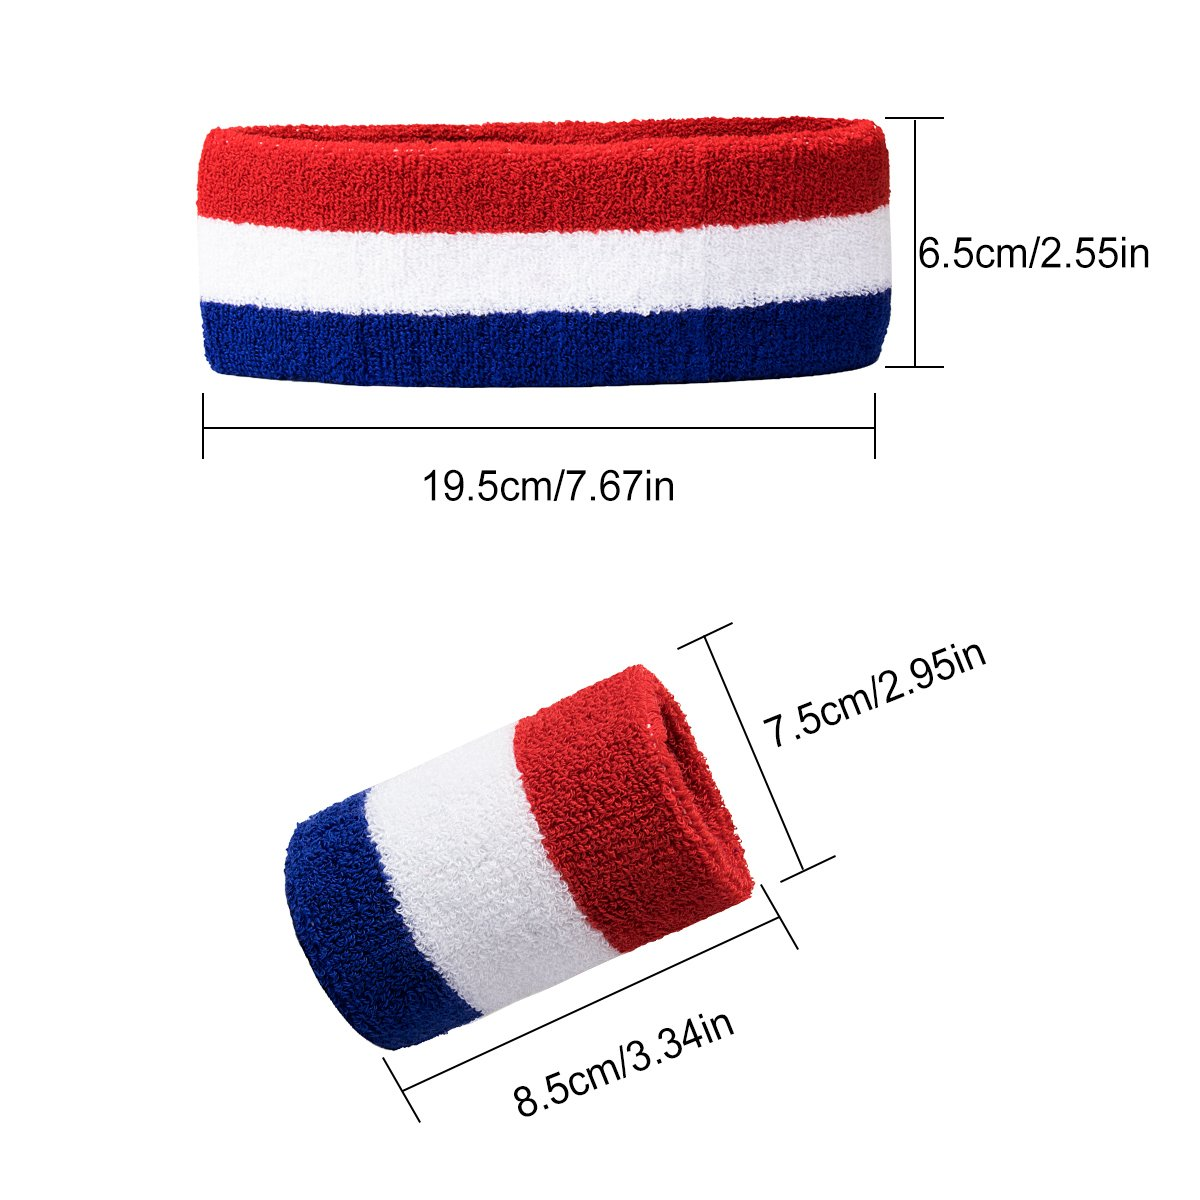 Amariver Sports Headbands Wristband Set Wristband for Athletic Exercise Basketball Wrist and Headbands for Moisture Wicking Absorbing Head Band